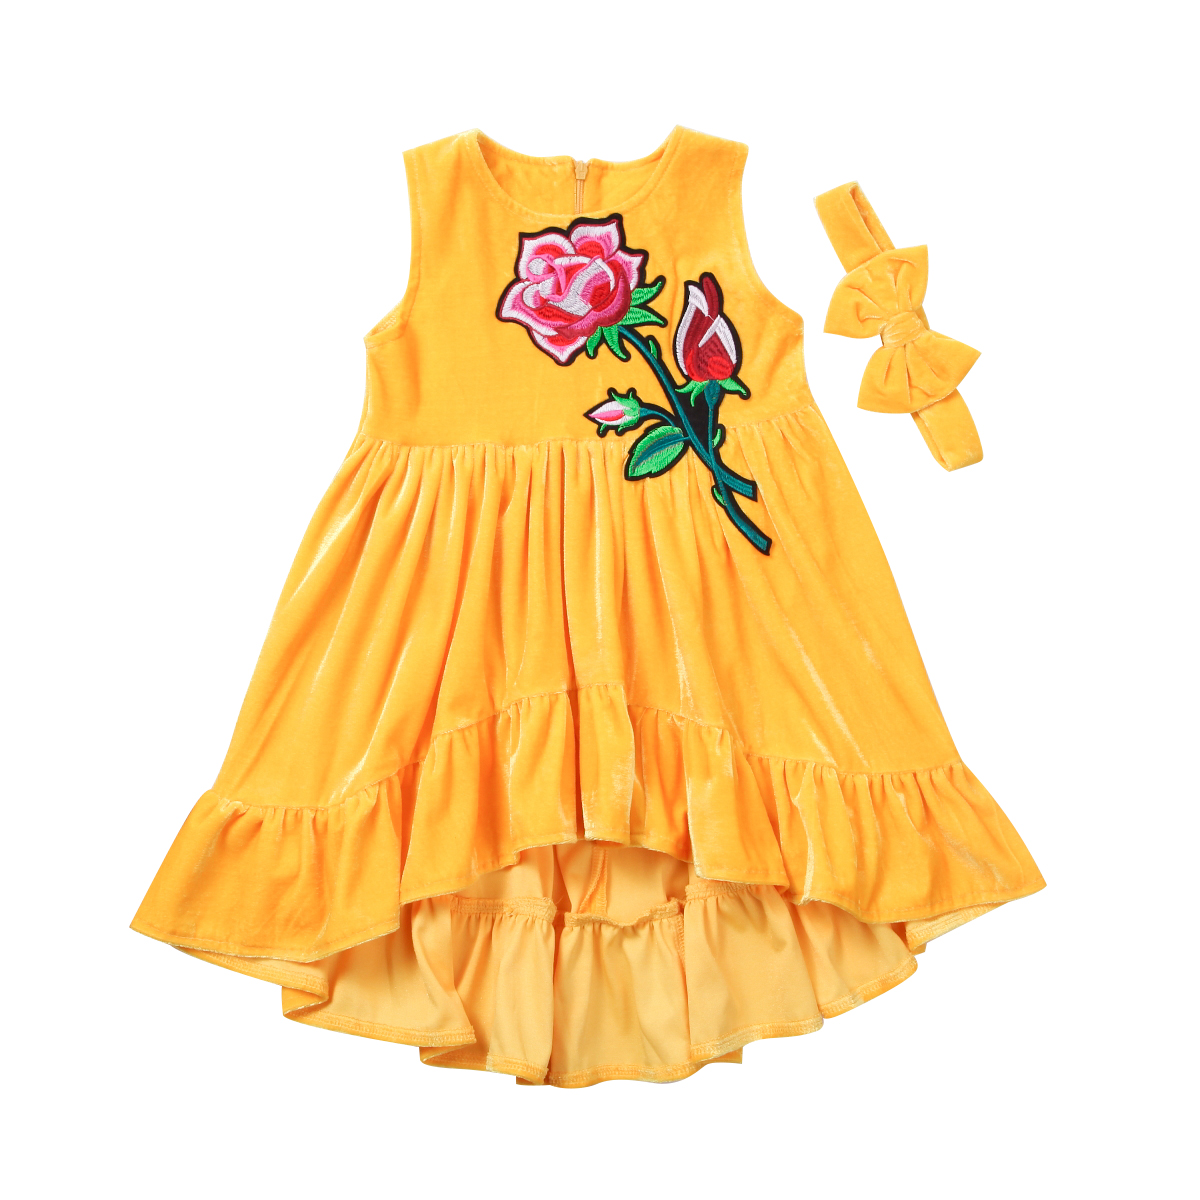 2Pcs Fashion Summer Lovely Baby Girl Party Floral O-neck Cotton Dress Headband Ruffle Sleeveless Beach Dresses Outfits Clothes 2017 floral baby girl clothes summer sleeveless flower romper bodysuit ruffles halter jumpsuit headband 2pcs outfits sunsuit